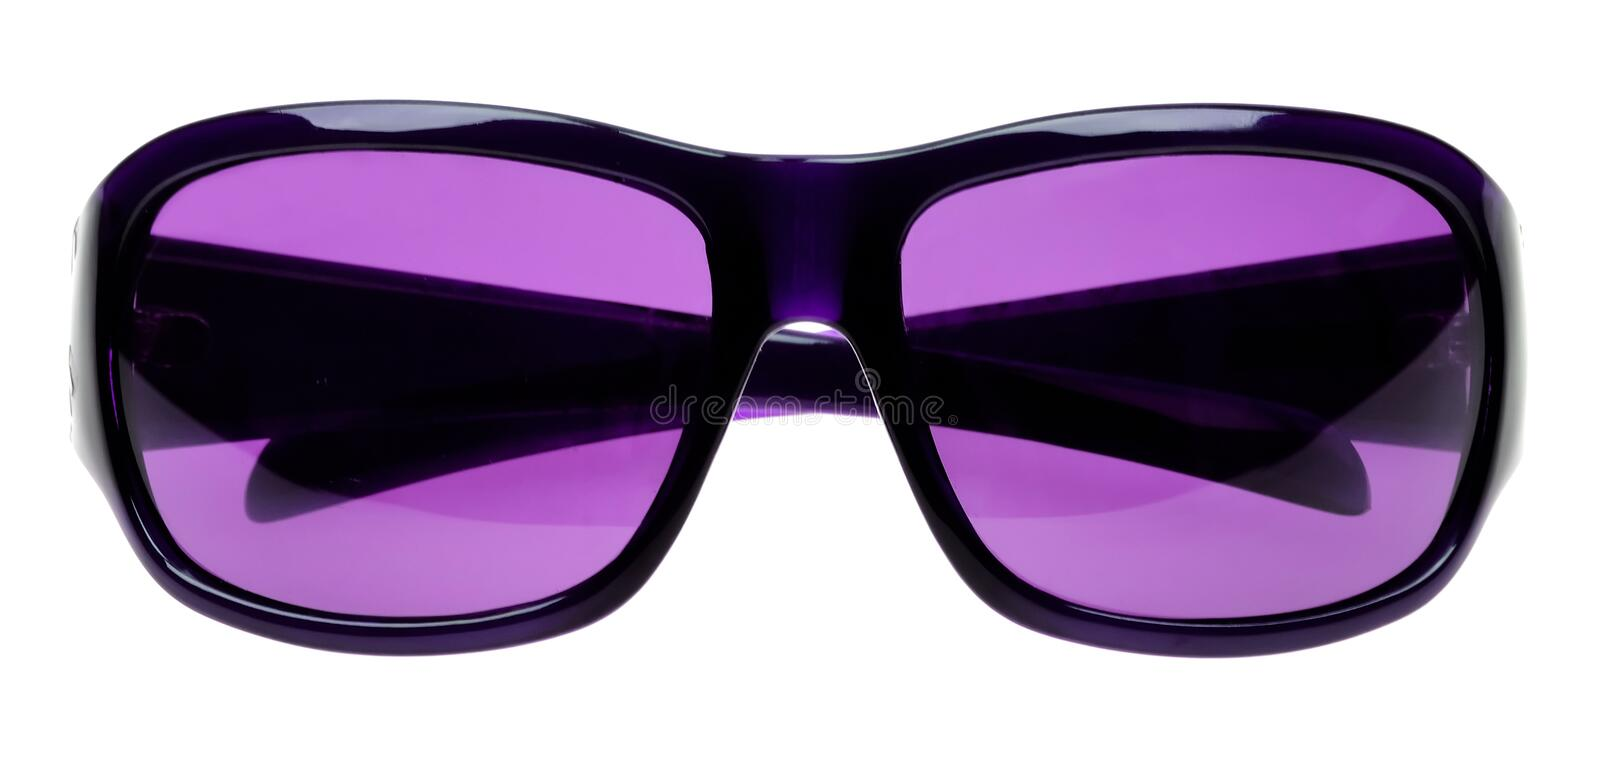 Sunglasses isolated on white royalty free stock image